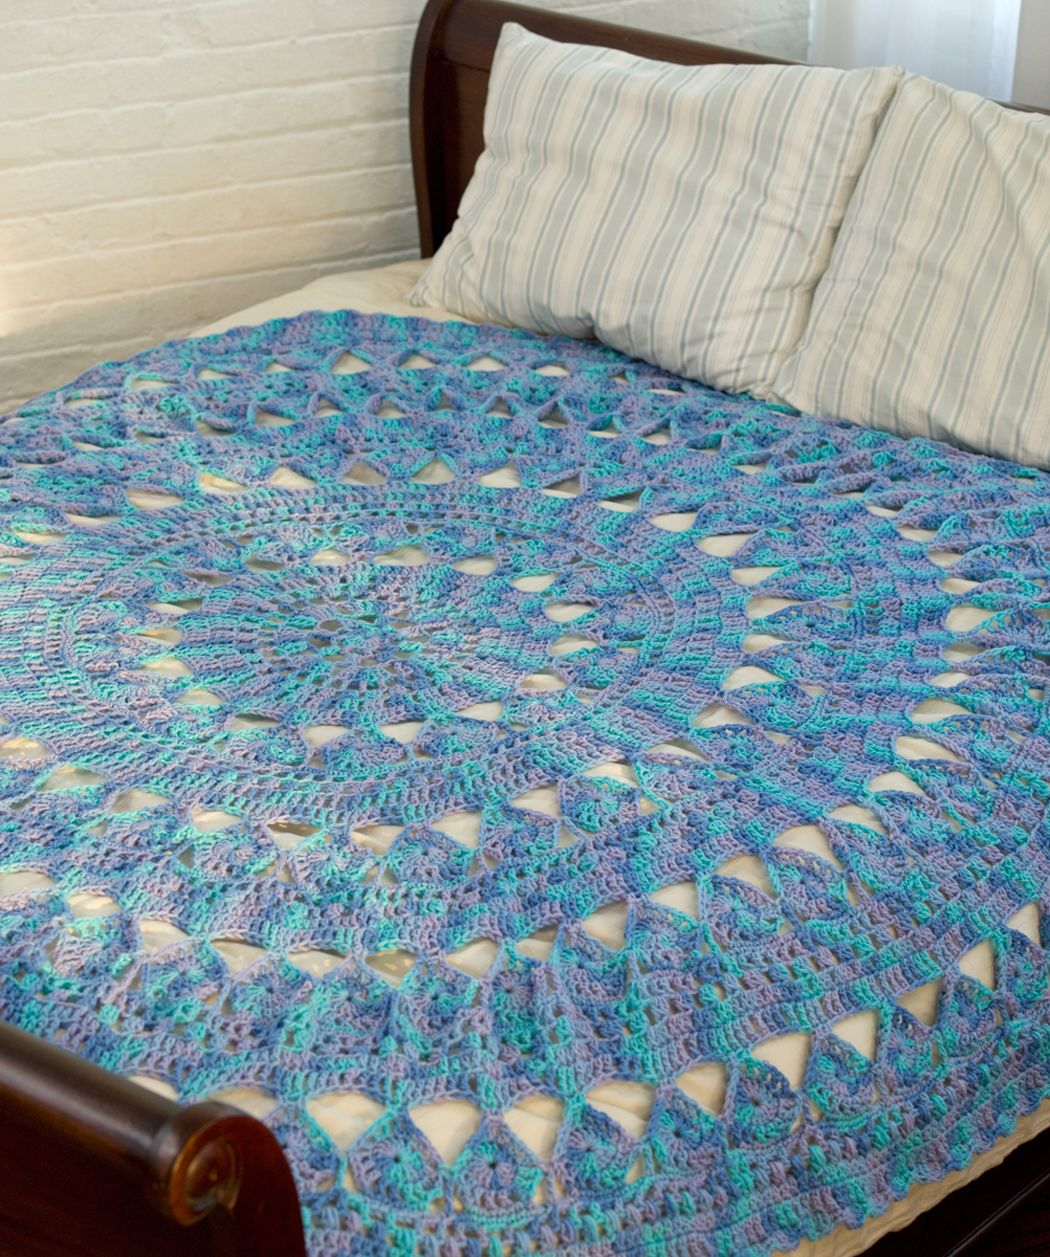 Knitting Pattern For Round Afghan : Medallion Circular Throw #crochet #SuperSaver #RedHeart ...